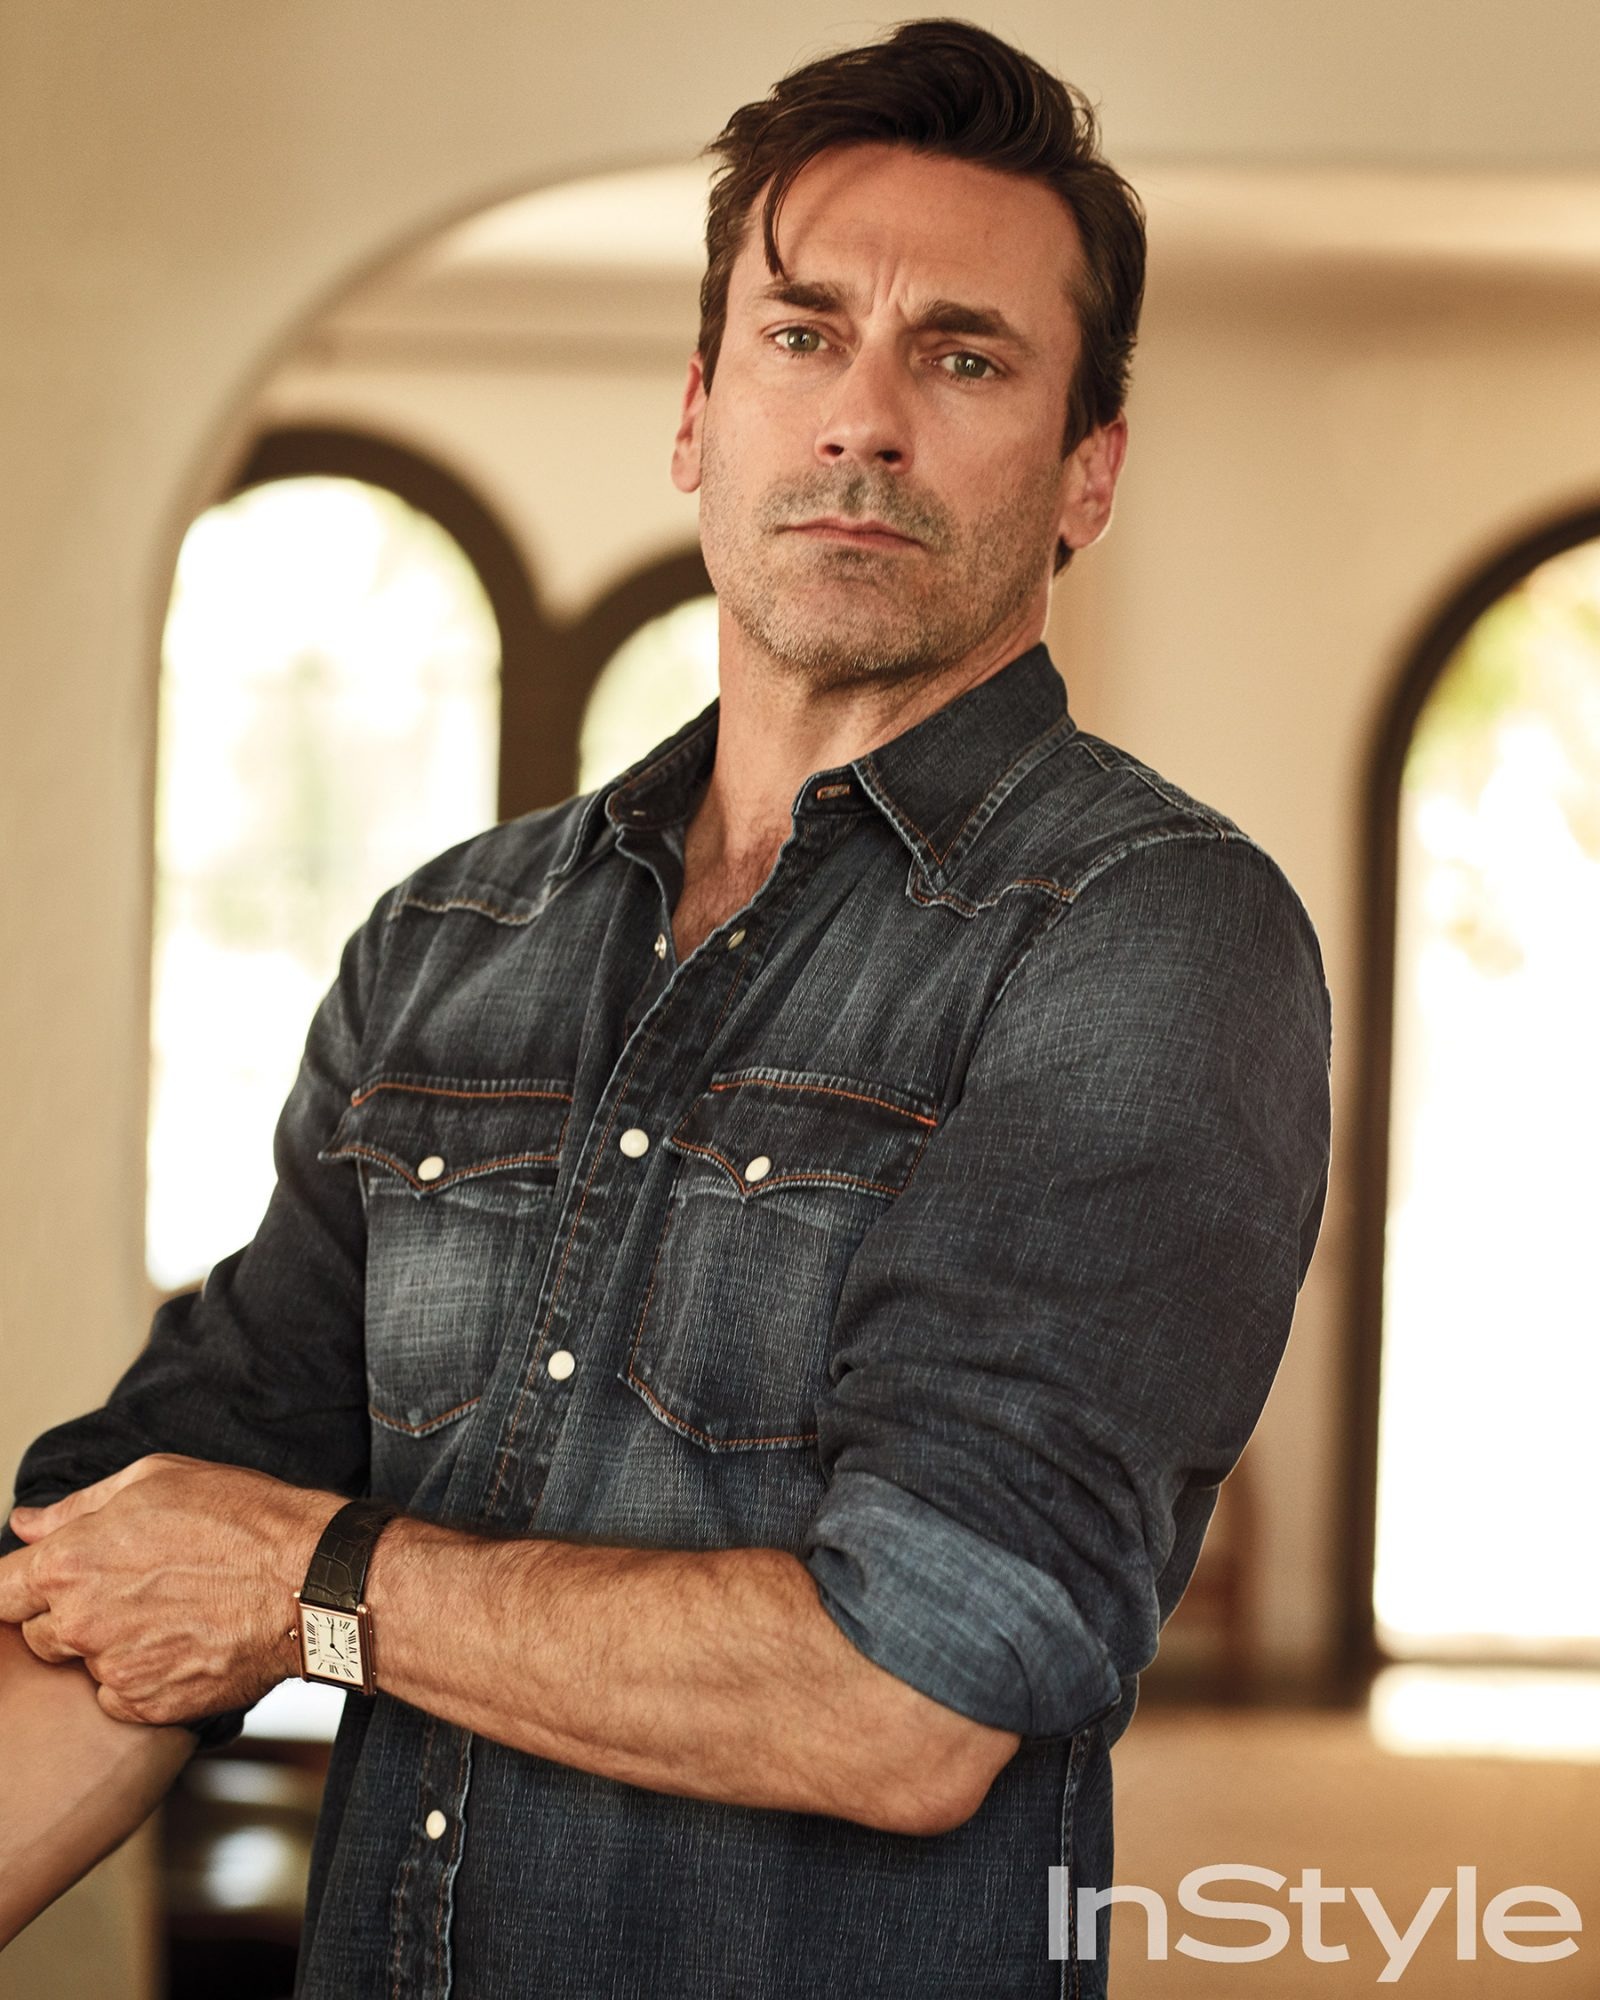 Jon Hamm in July issue of InStyle